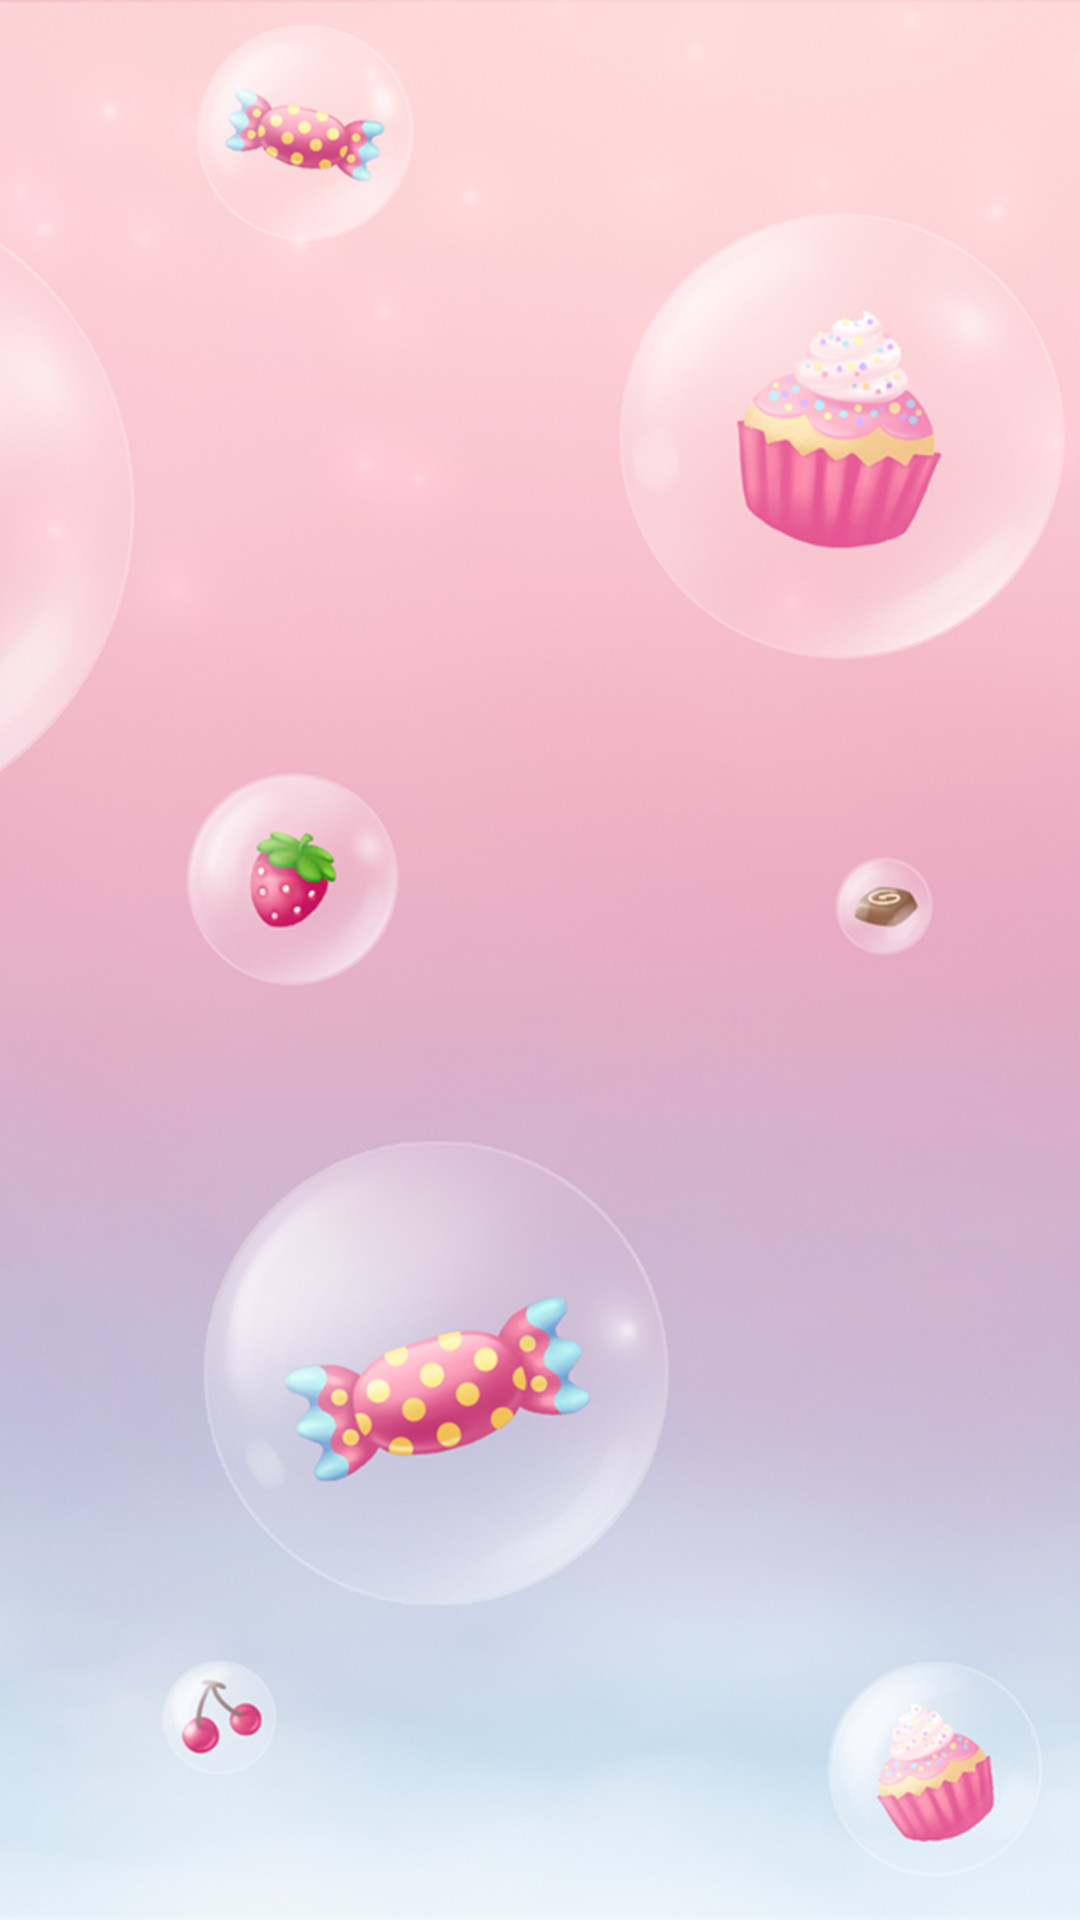 Res: 1080x1920, Girly cute iPhone6s wallpaper 💕: cupcakes